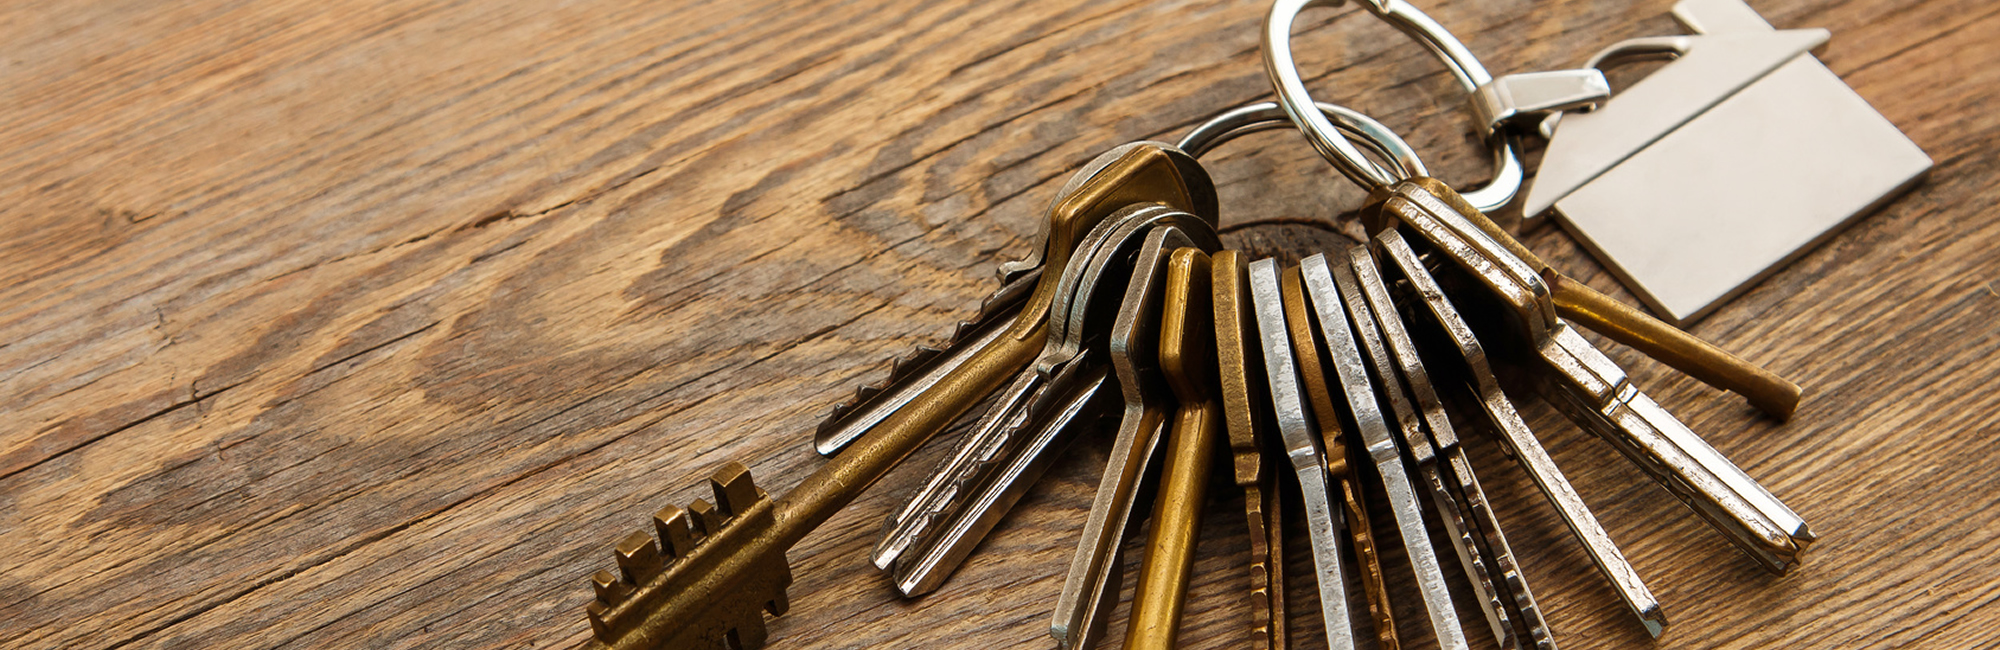 Keys used by our 24 hour locksmith in Newtown